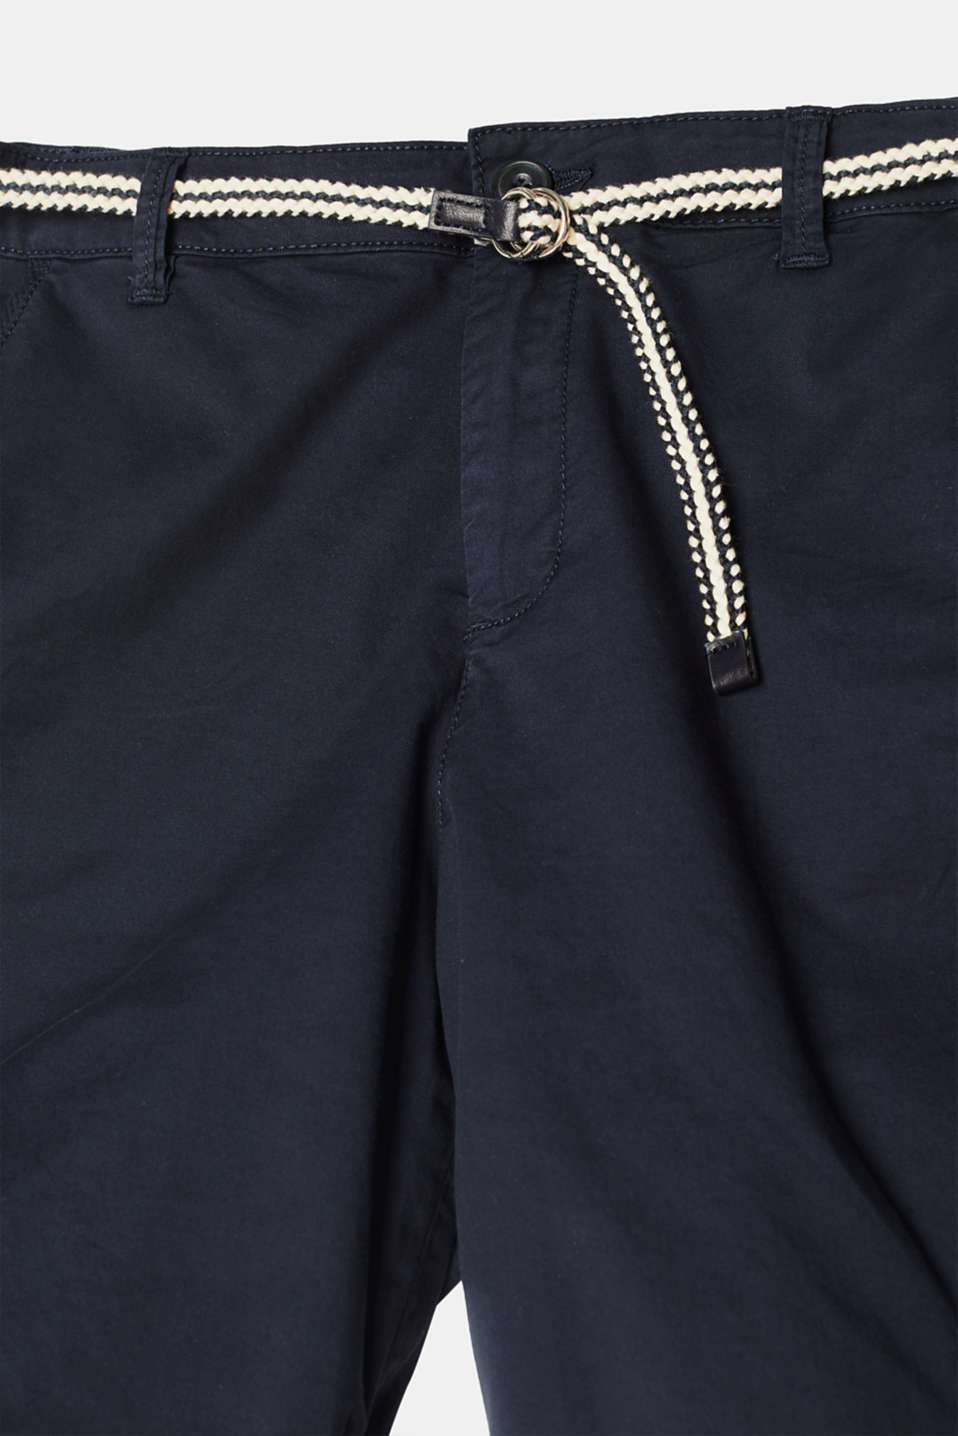 Stretch cotton Bermudas with a belt, NAVY, detail image number 4